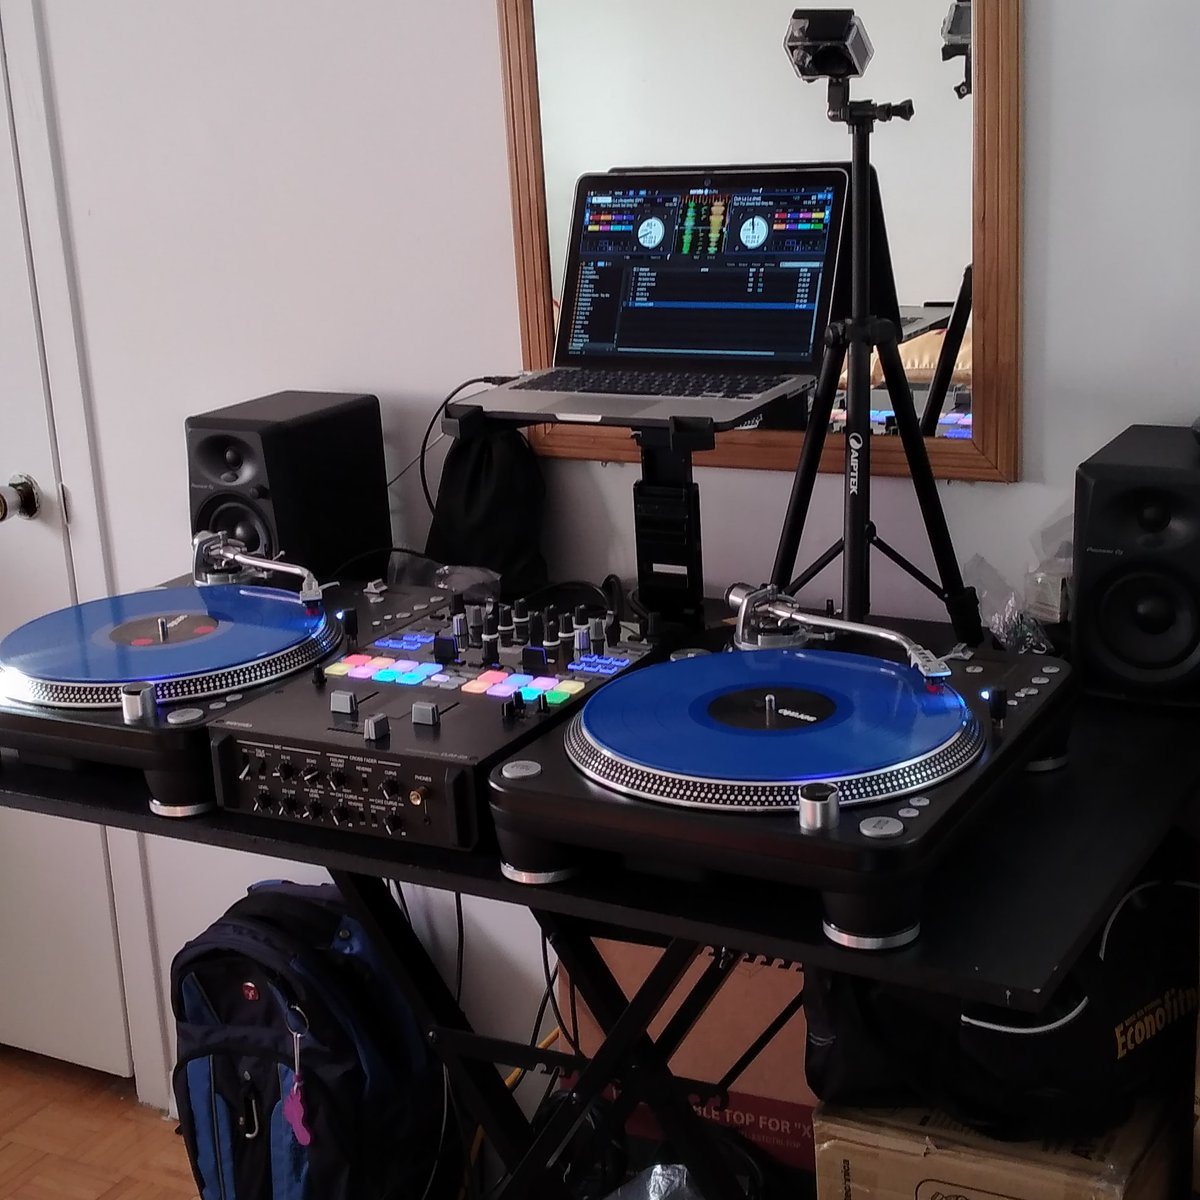 Mini Labo For Scratch  #setup #dj #turntable #love #ing #motivatin #good #vibe #good #live #music #vinyl #vinylrecords #3style #Akasoek700 #enjoy #djms9 #battle #mixer #seratodjpro #speaker #pioneerdj #studio #scratching #good #lookpic.twitter.com/jkQFYLzRAo